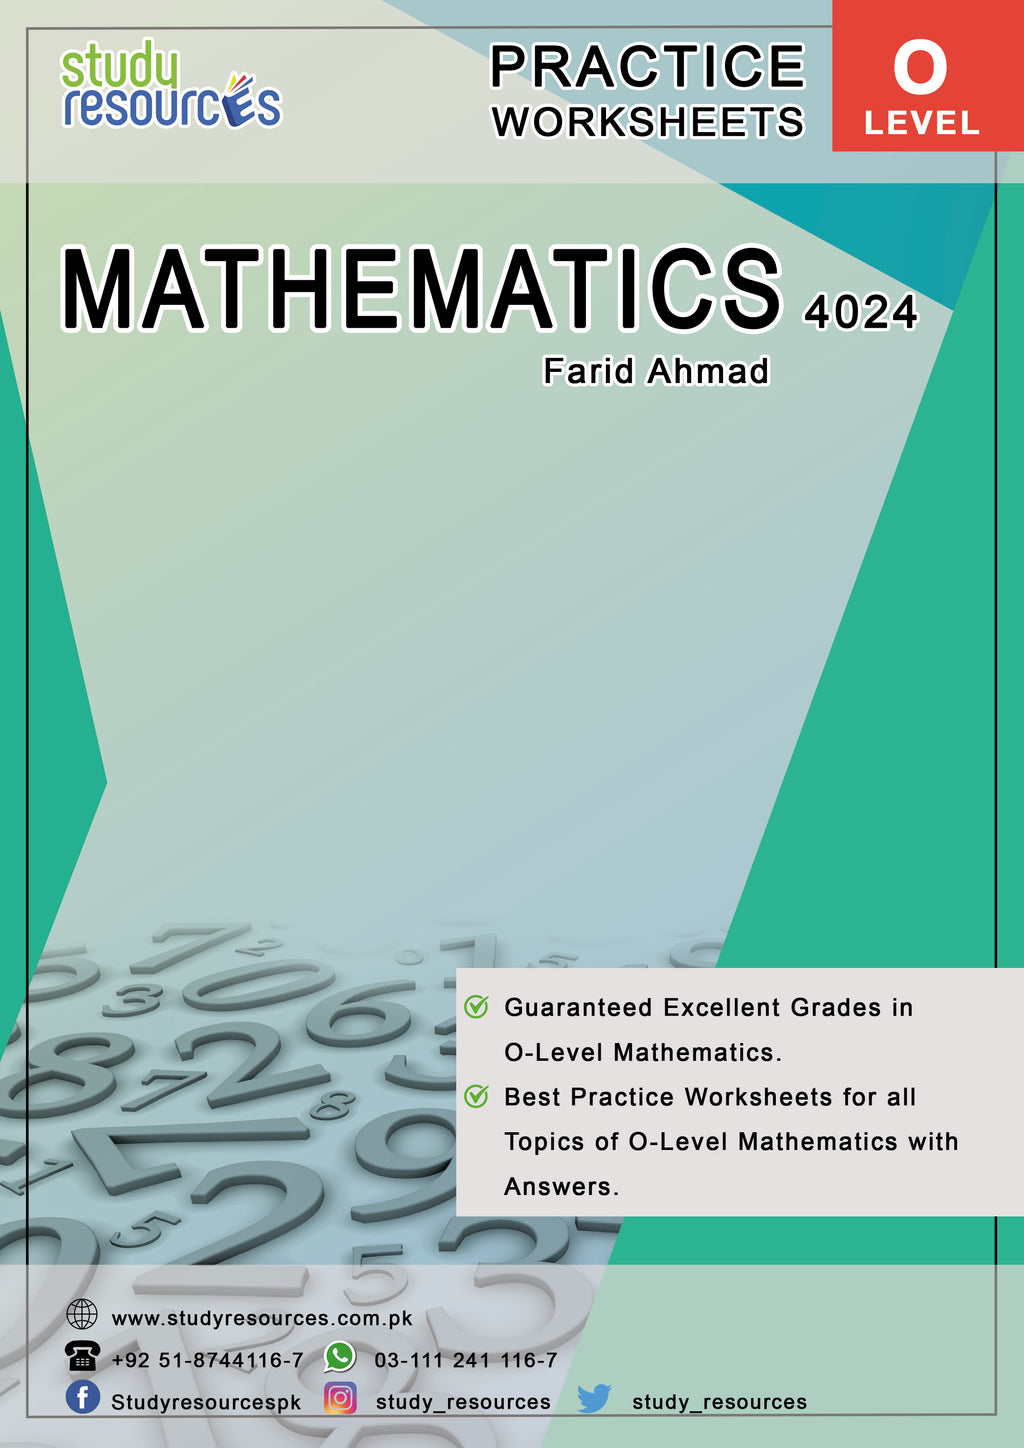 Cambridge O-Level Mathematics (4024) Practice Worksheets By Sir. Farid Ahmad